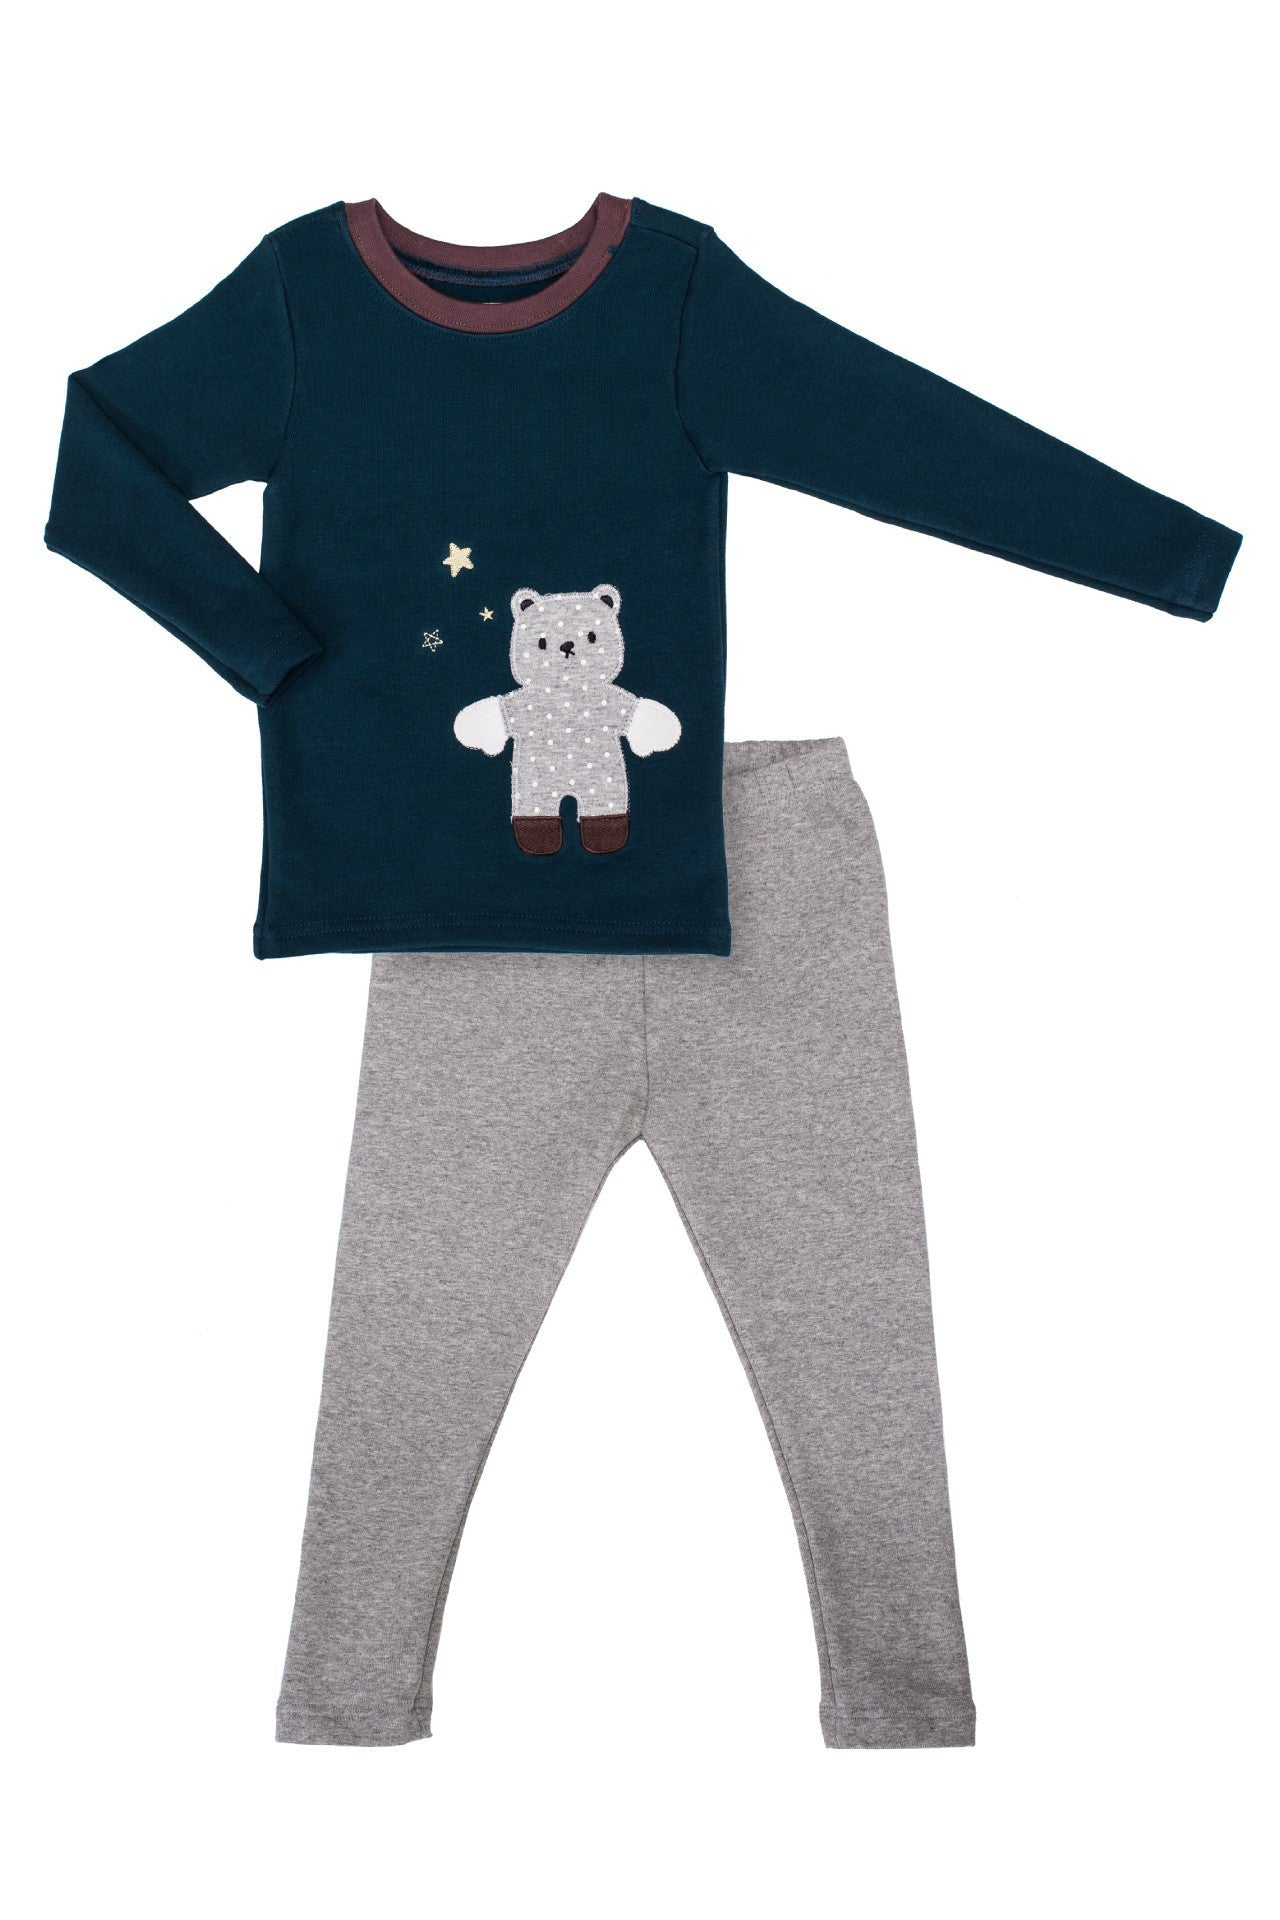 Slimfit Pajamas - Warmest, Softest Pajamas - Midnight Teddy